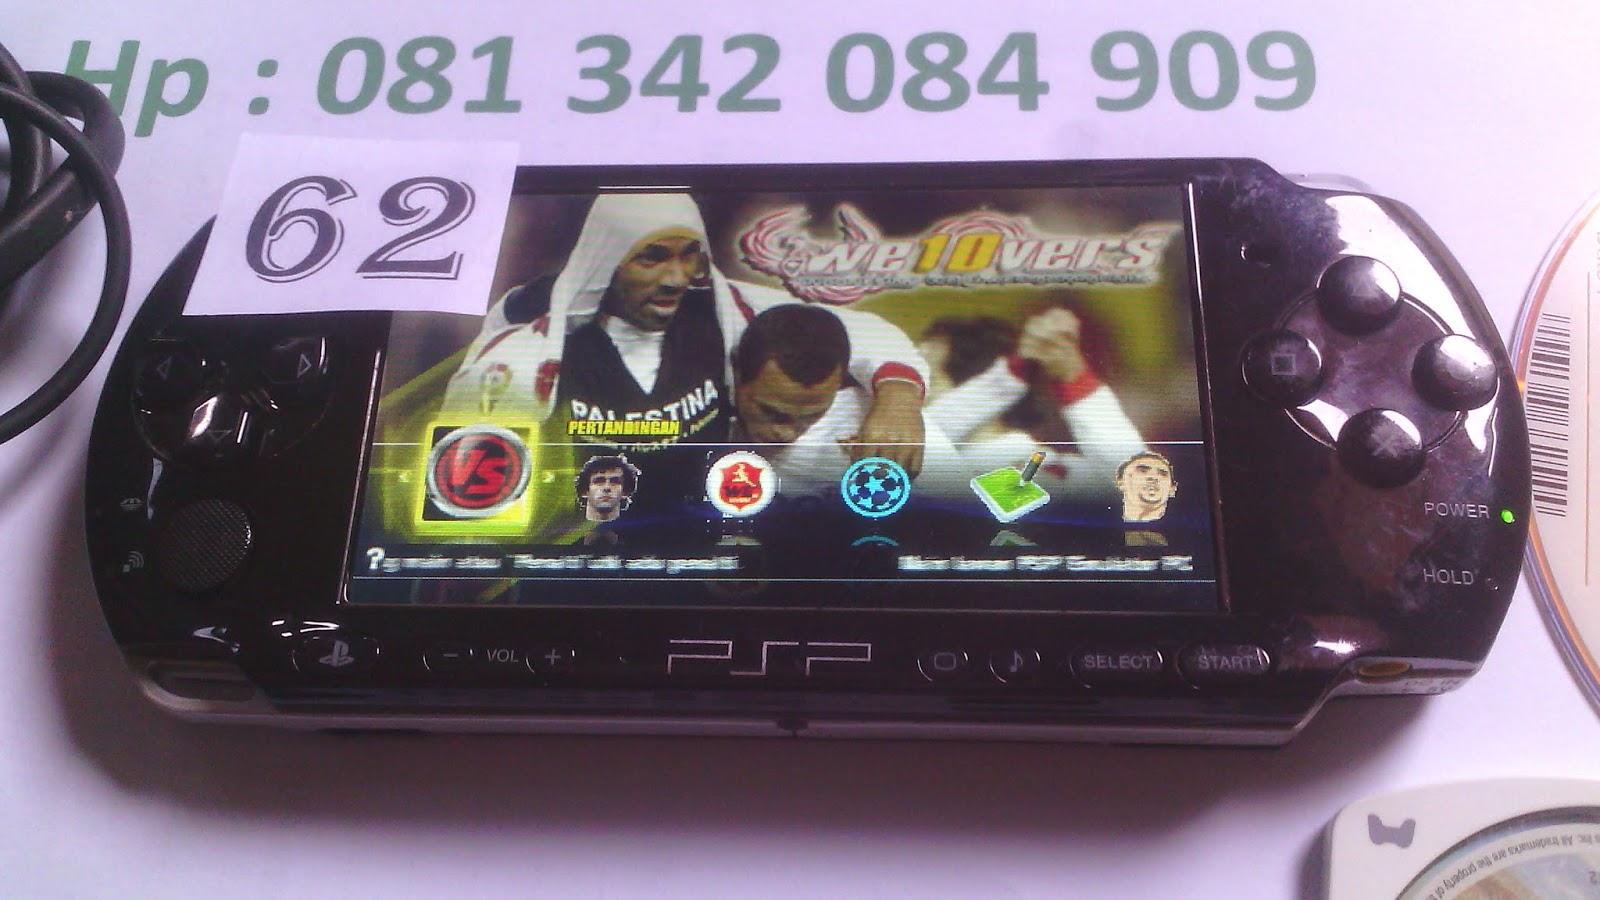 how to hack psp 3003 firmware 6.60